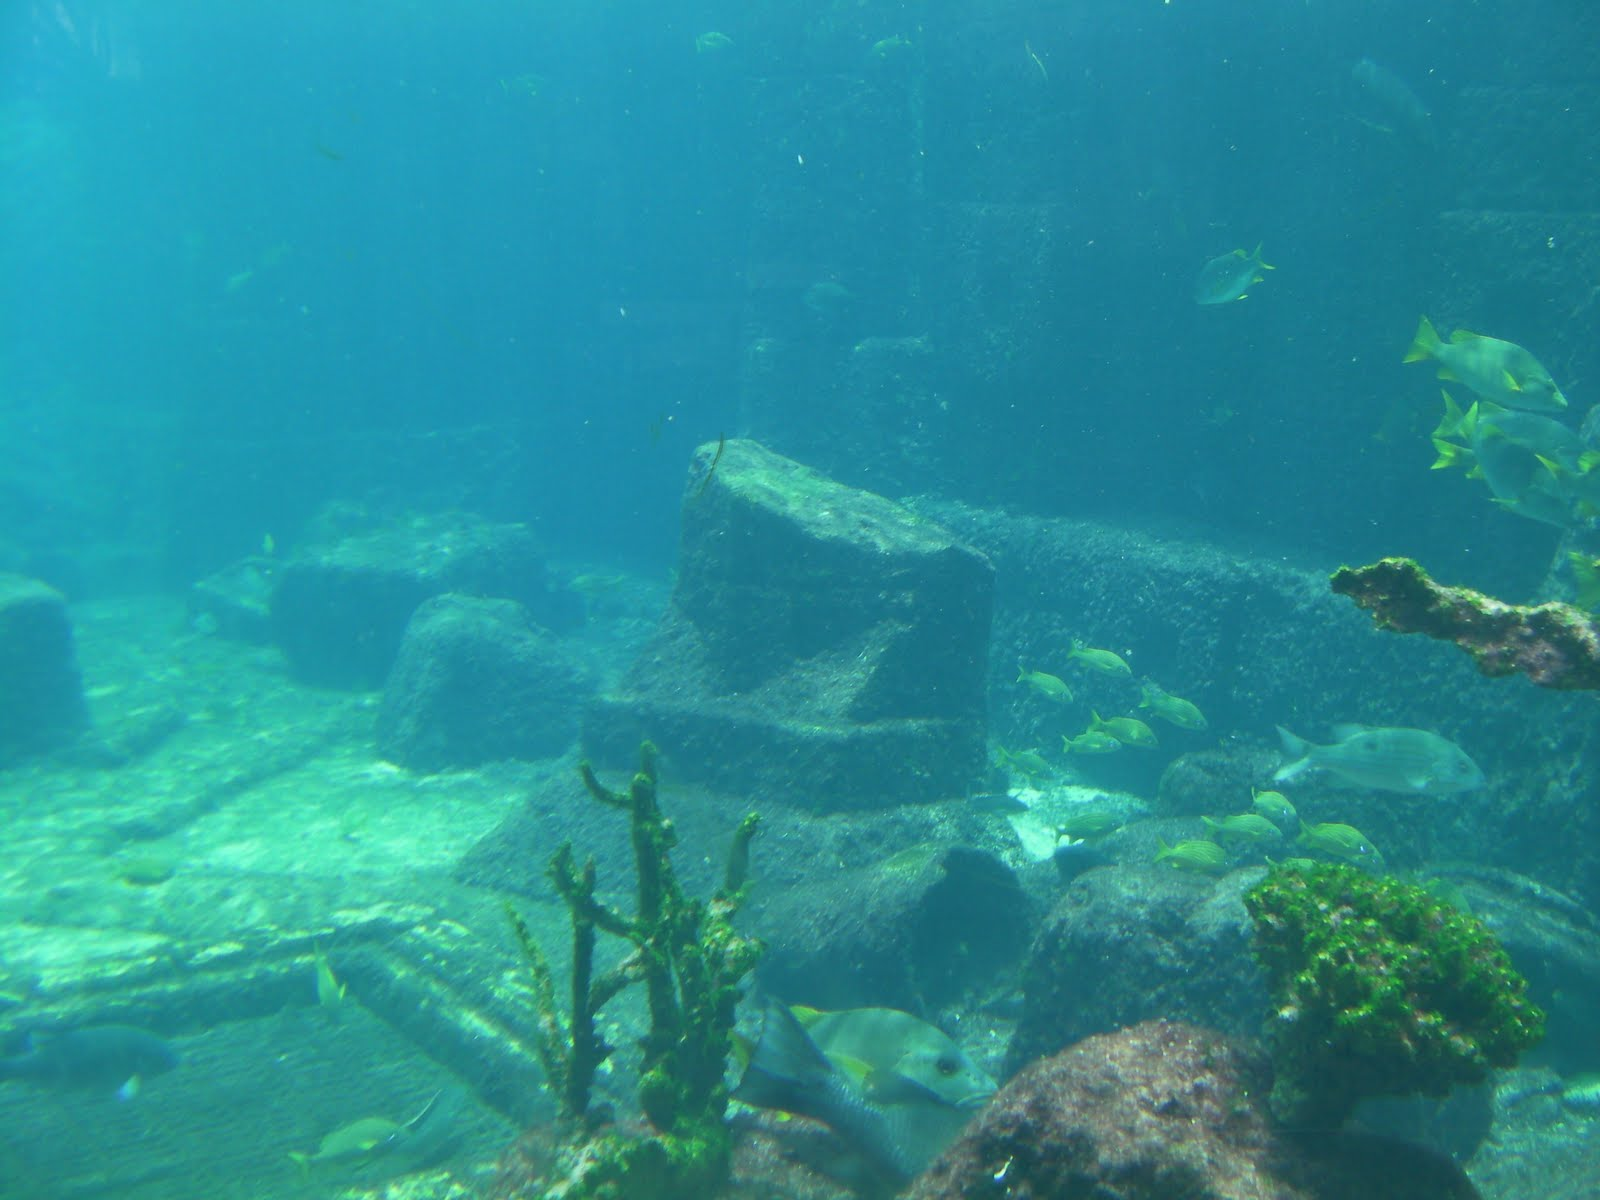 Real Underwater Ruins Number One London: Sno...